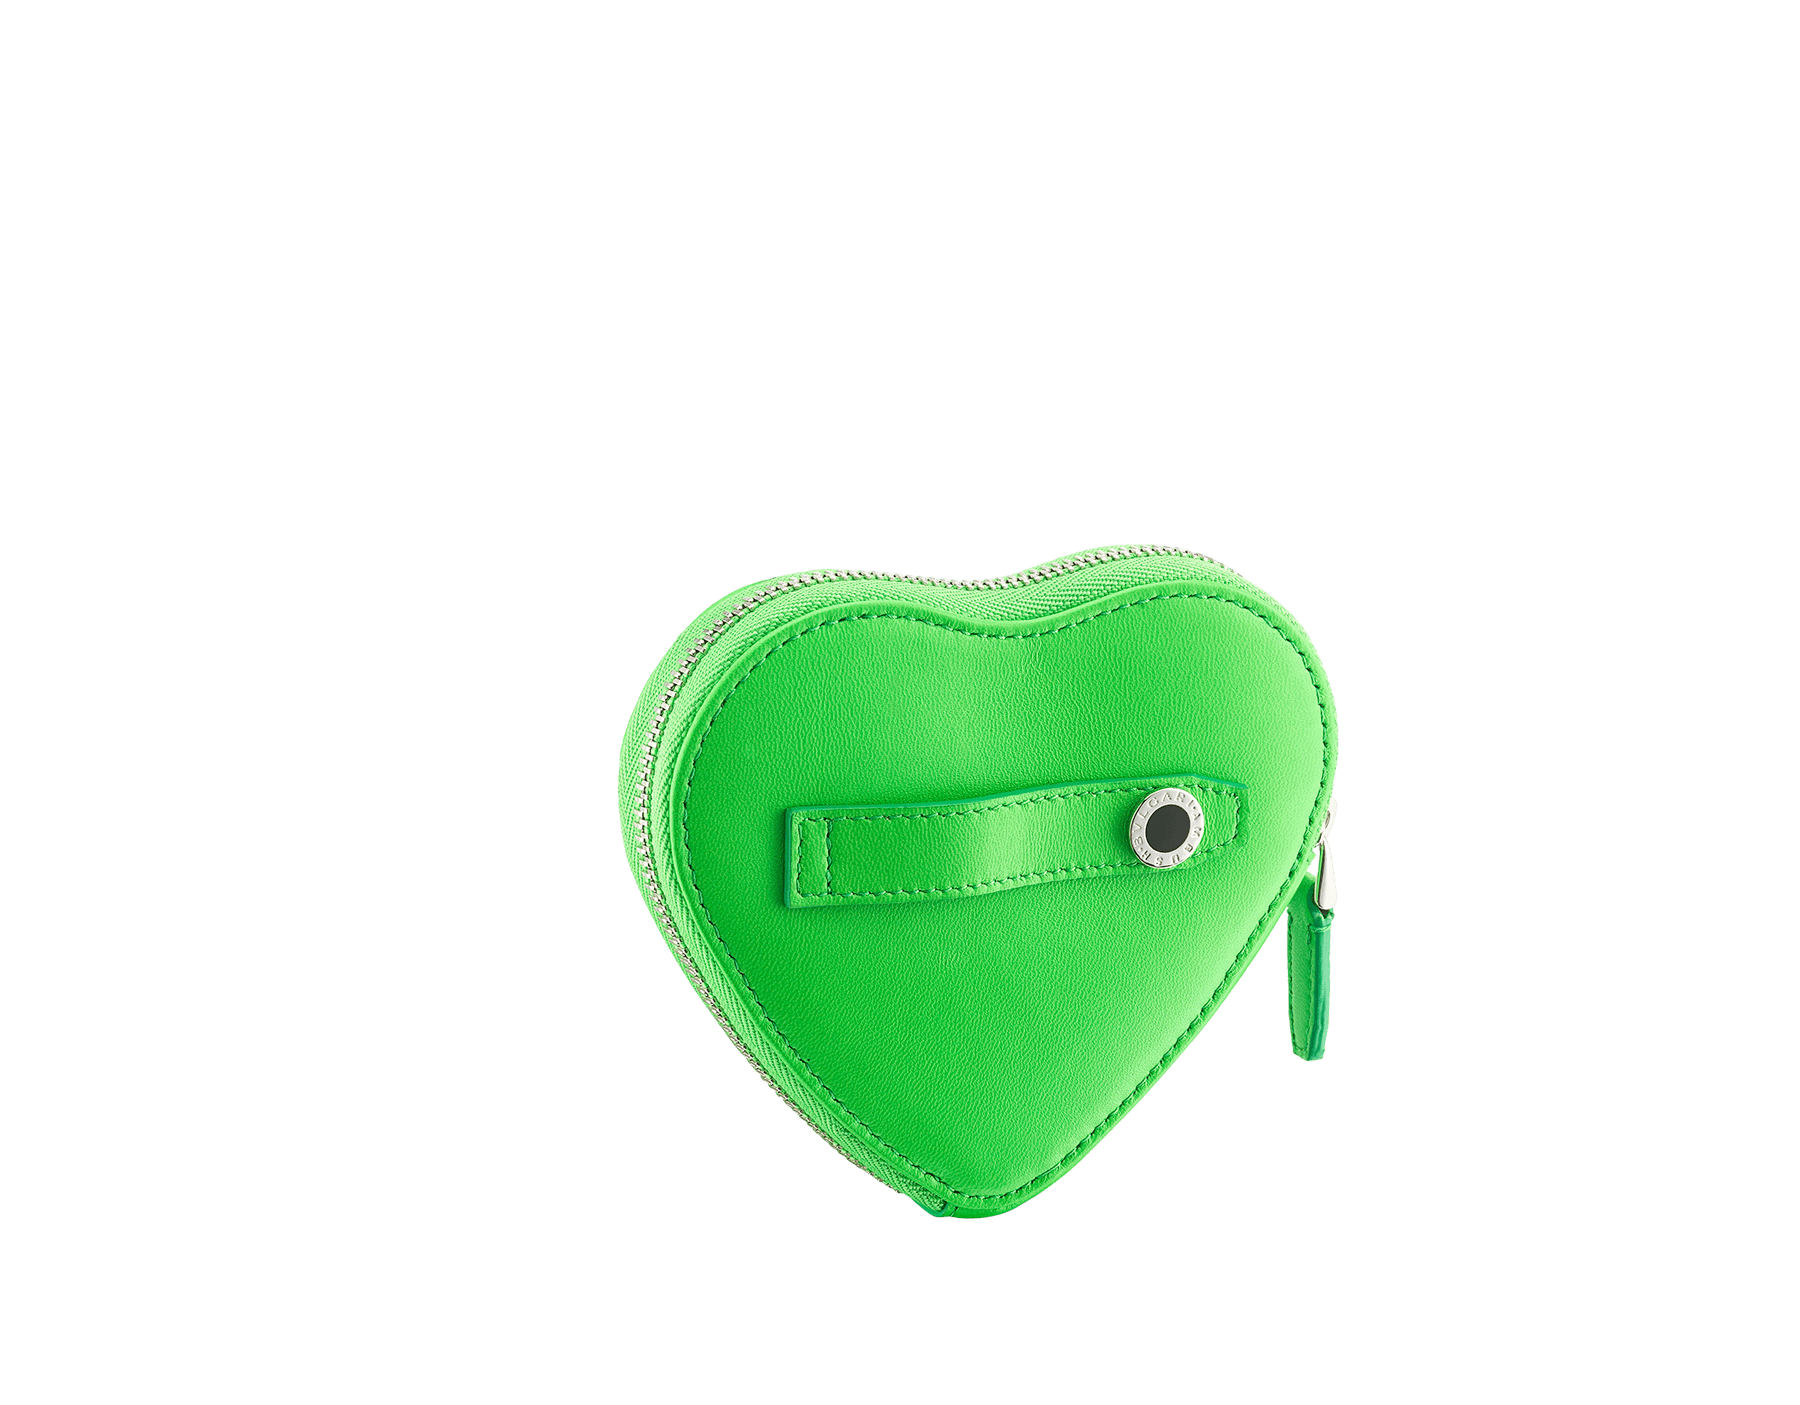 """Ambush x Bvlgari"" coin purse in bright green quilted nappa leather. New Serpenti head in palladium-plated brass covered with bright green nappa leather and finished with black onyx eyes. Limited edition. YA-HEARTCOINC image 3"